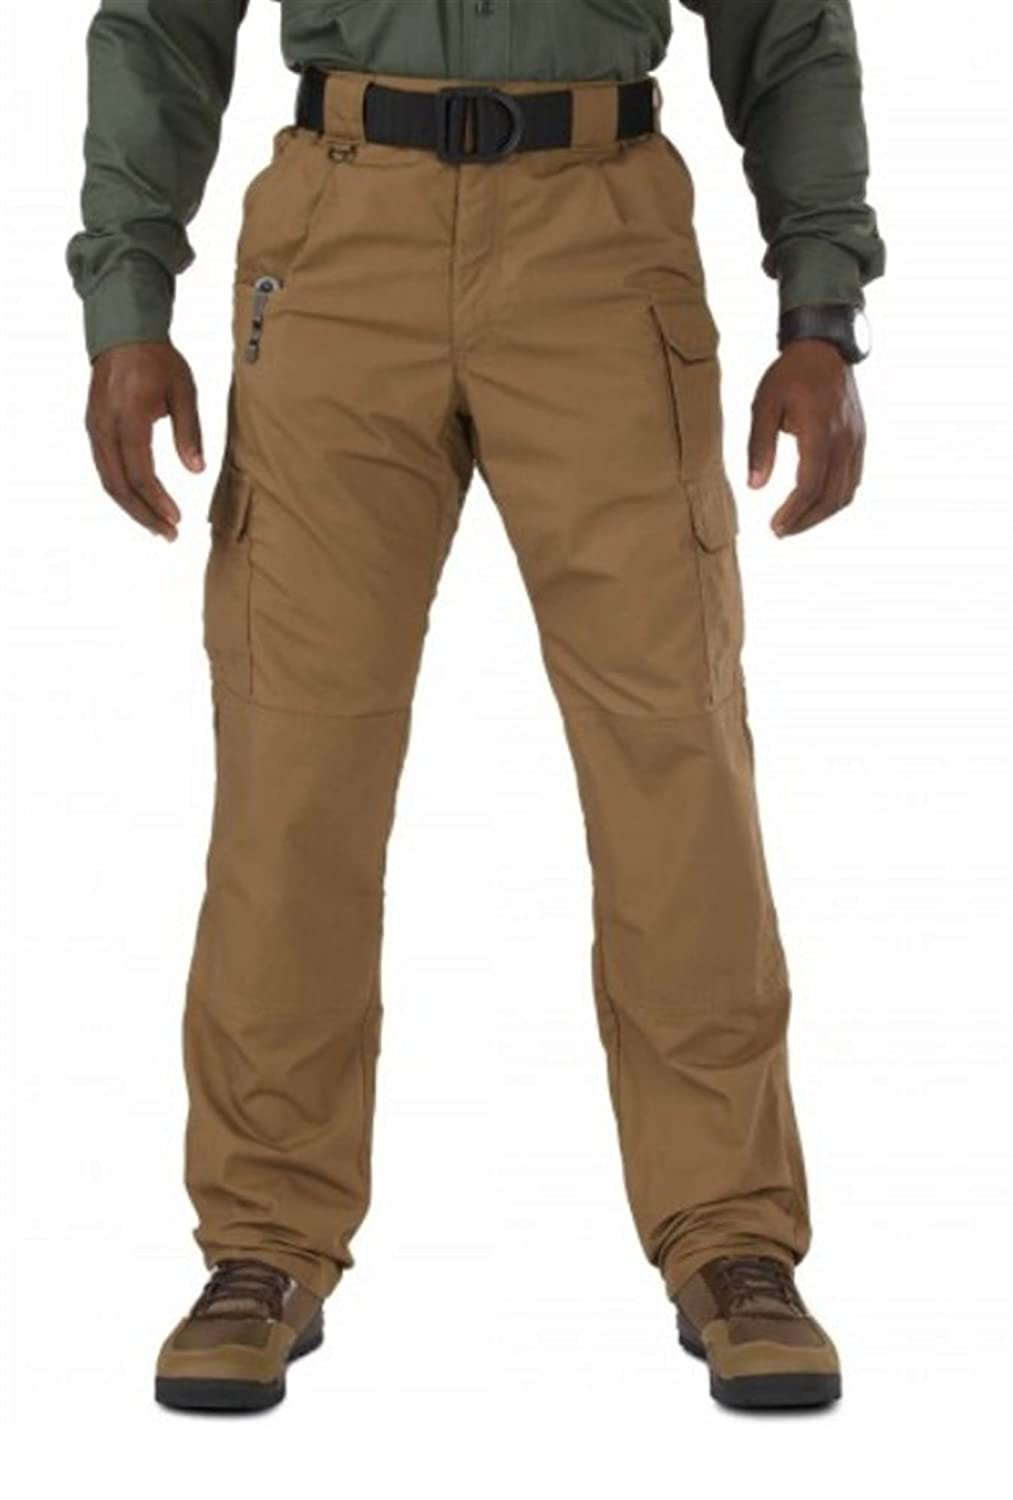 5.11 Tactical #74273 Men